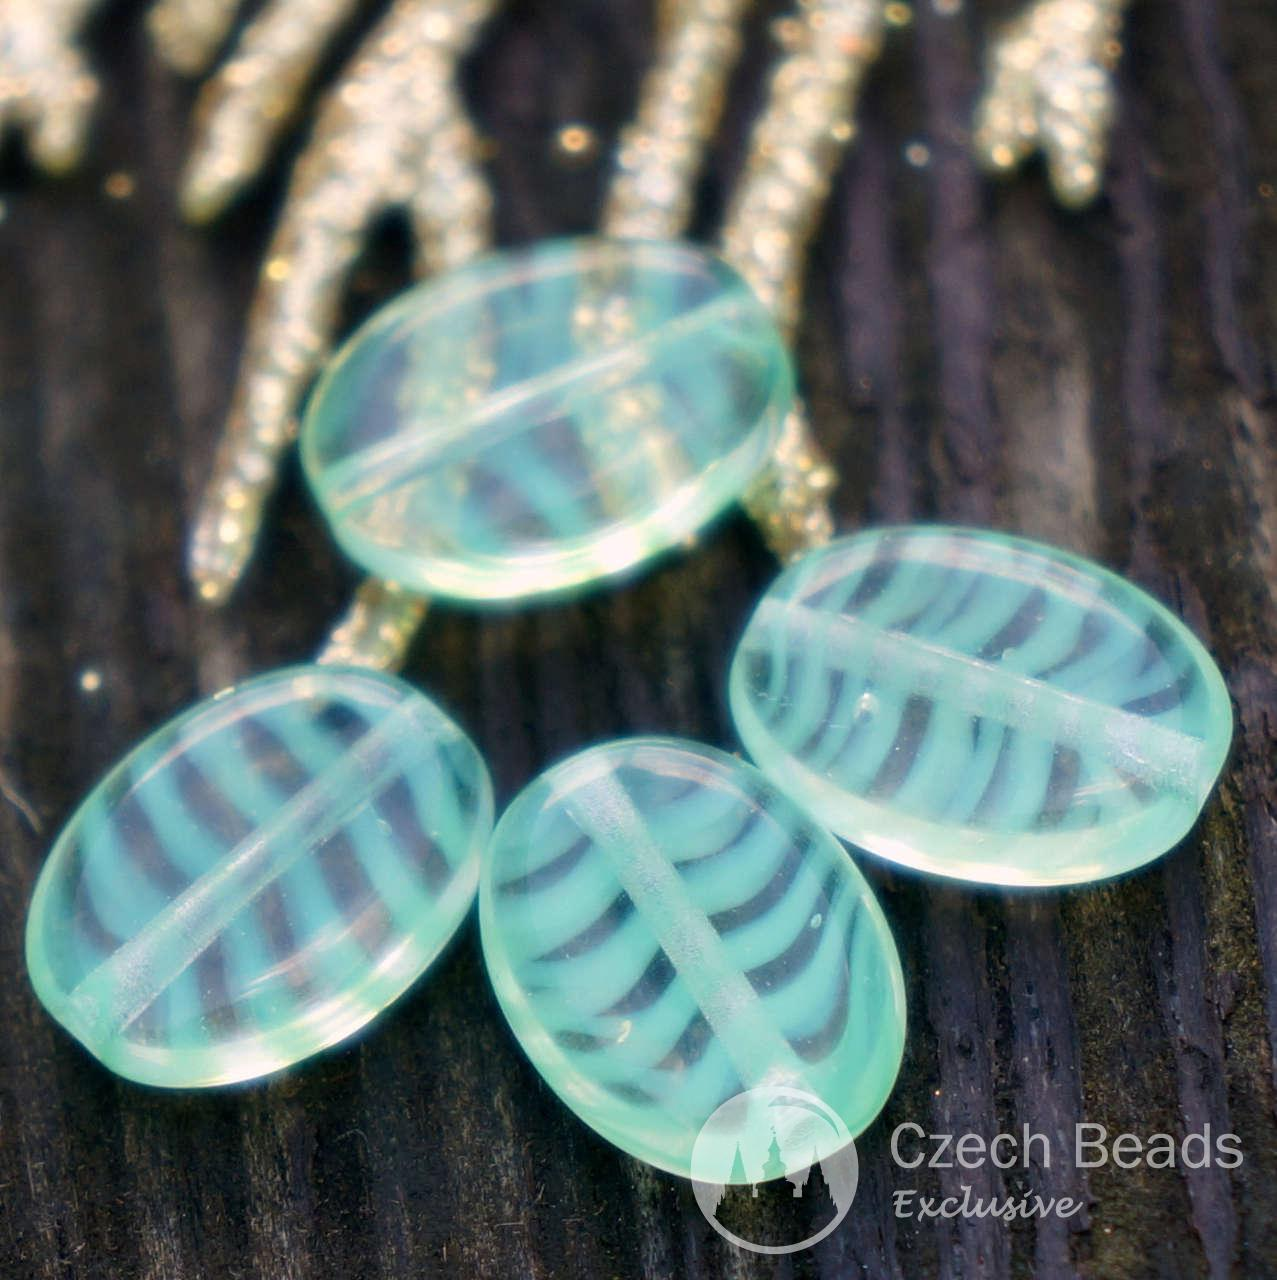 Clear Green Oval Czech Glass Beads Striped Flat Oval Beads Clear Green Beads Green Oval Flat Glass Beads 12mm x 9mm 6pc